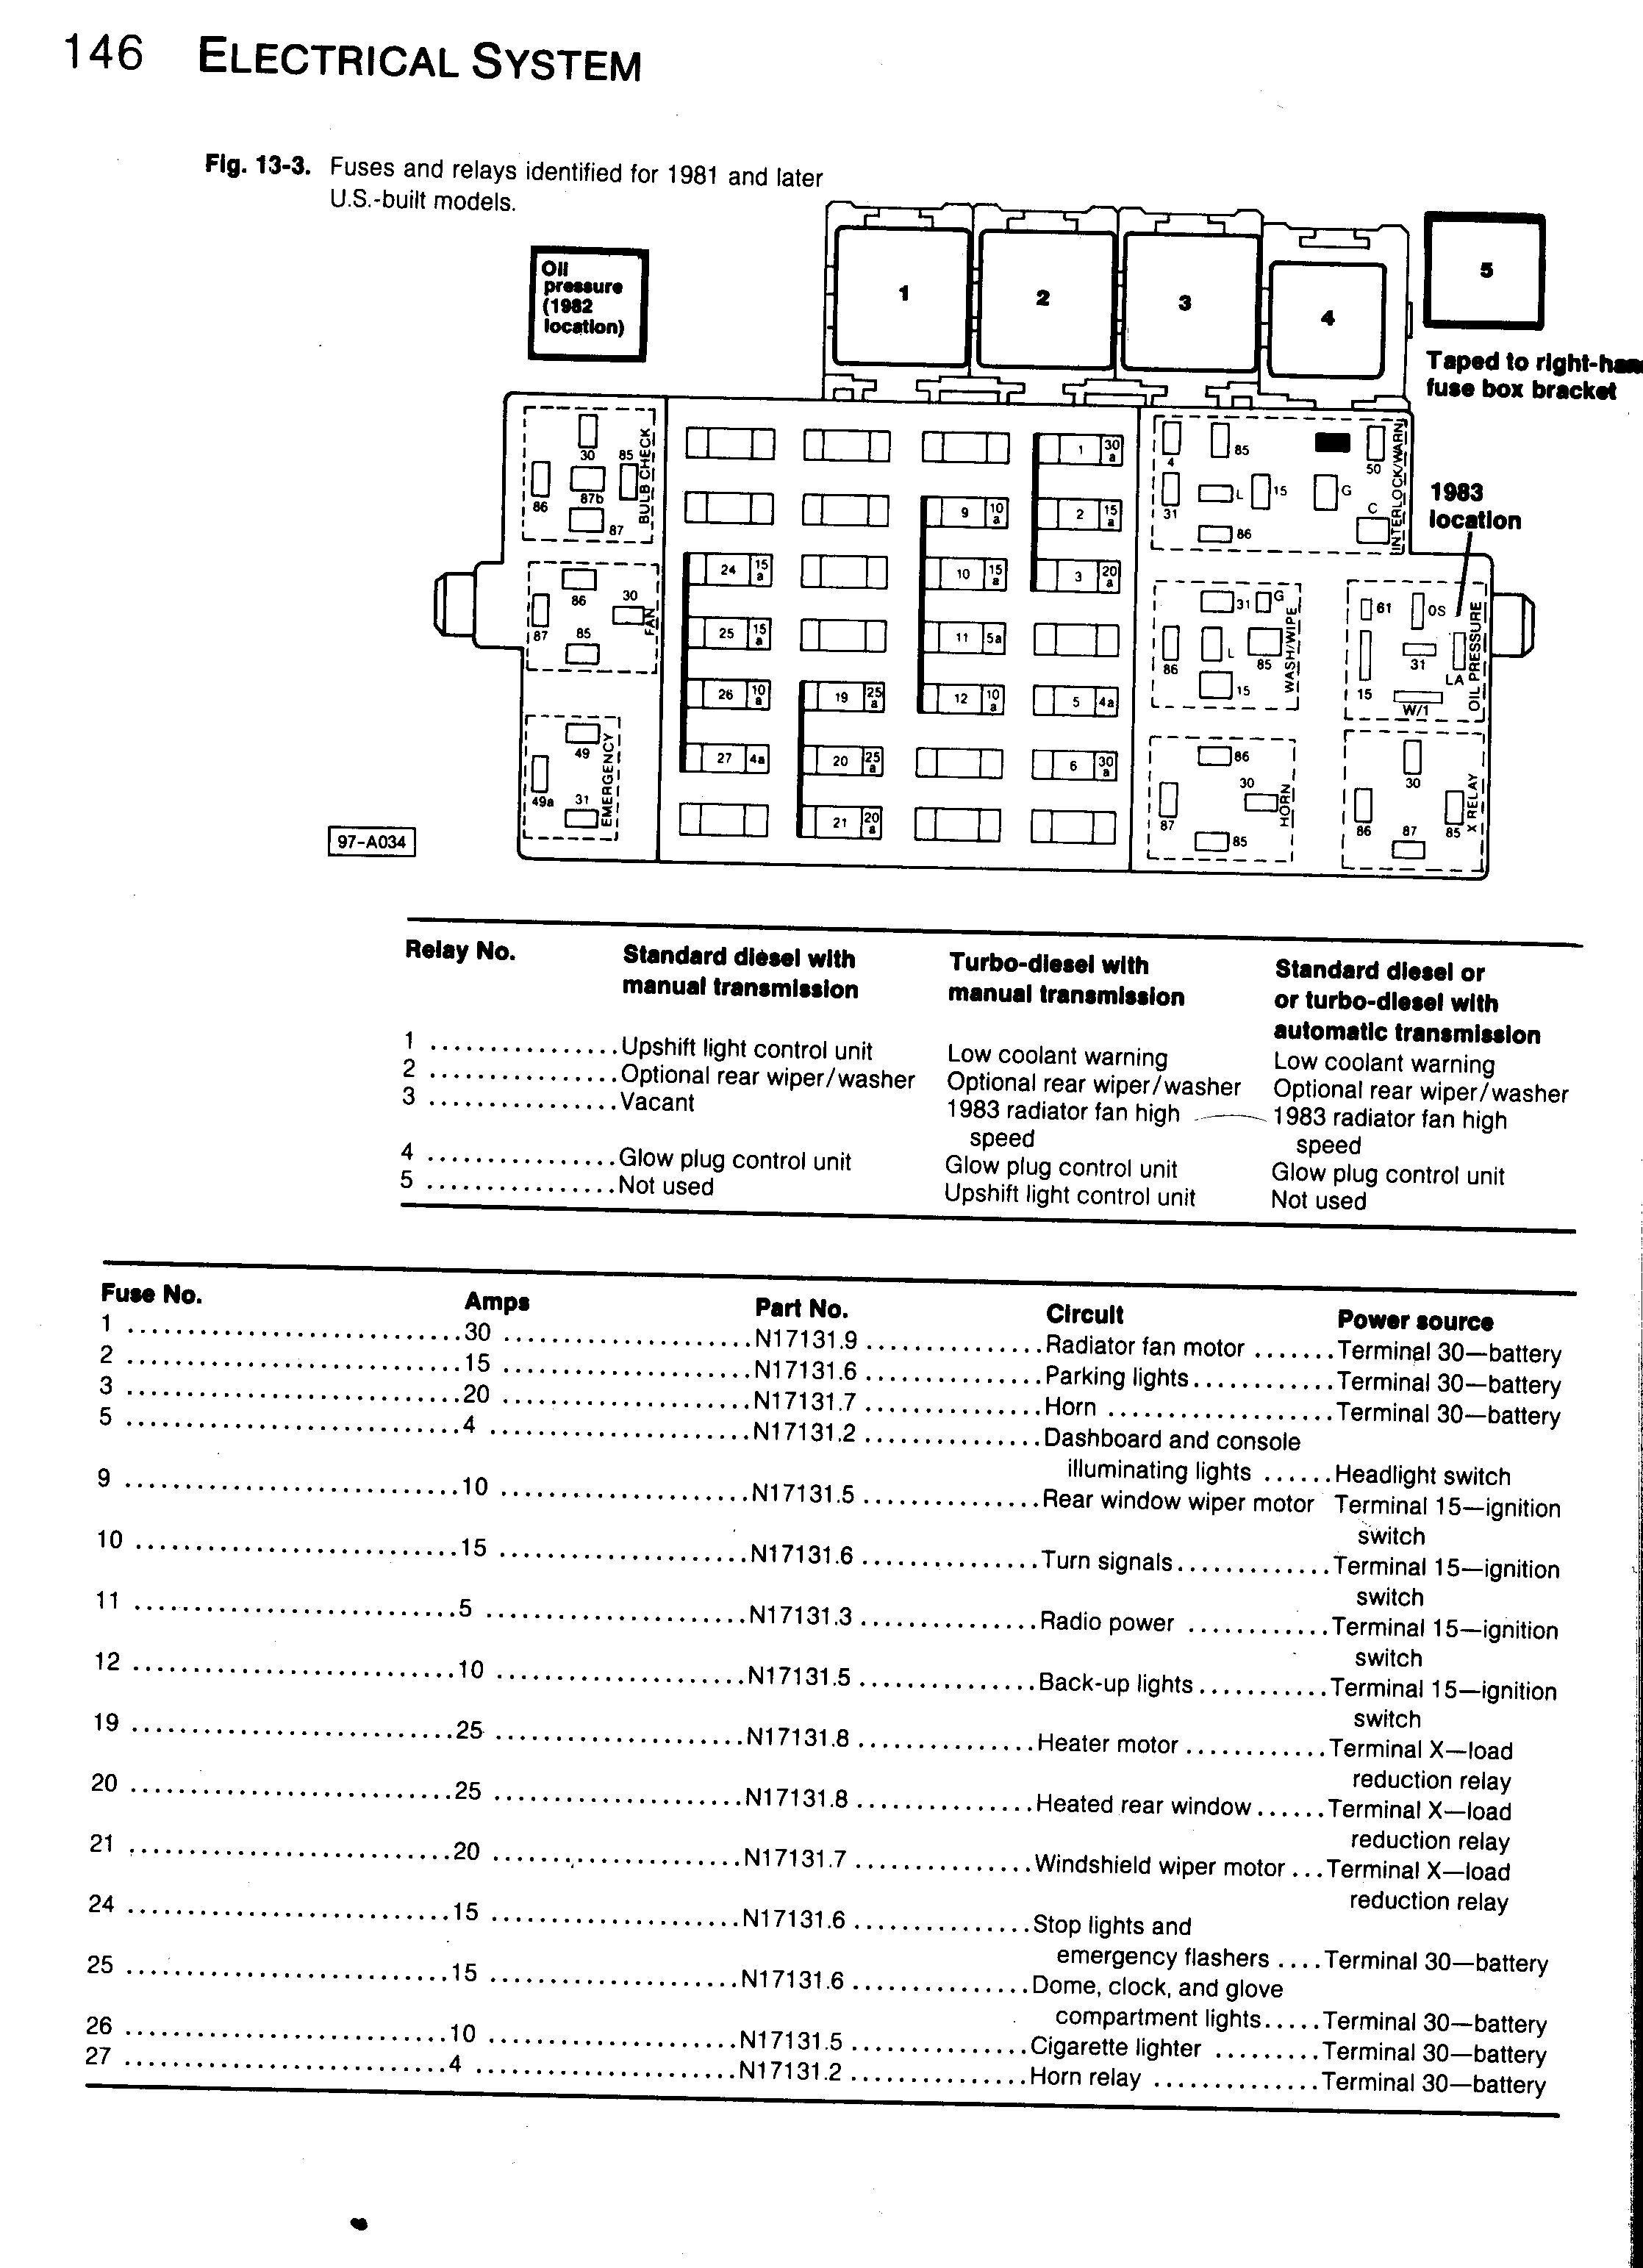 1996 Pontiac Bonneville Fuse Box Diagram